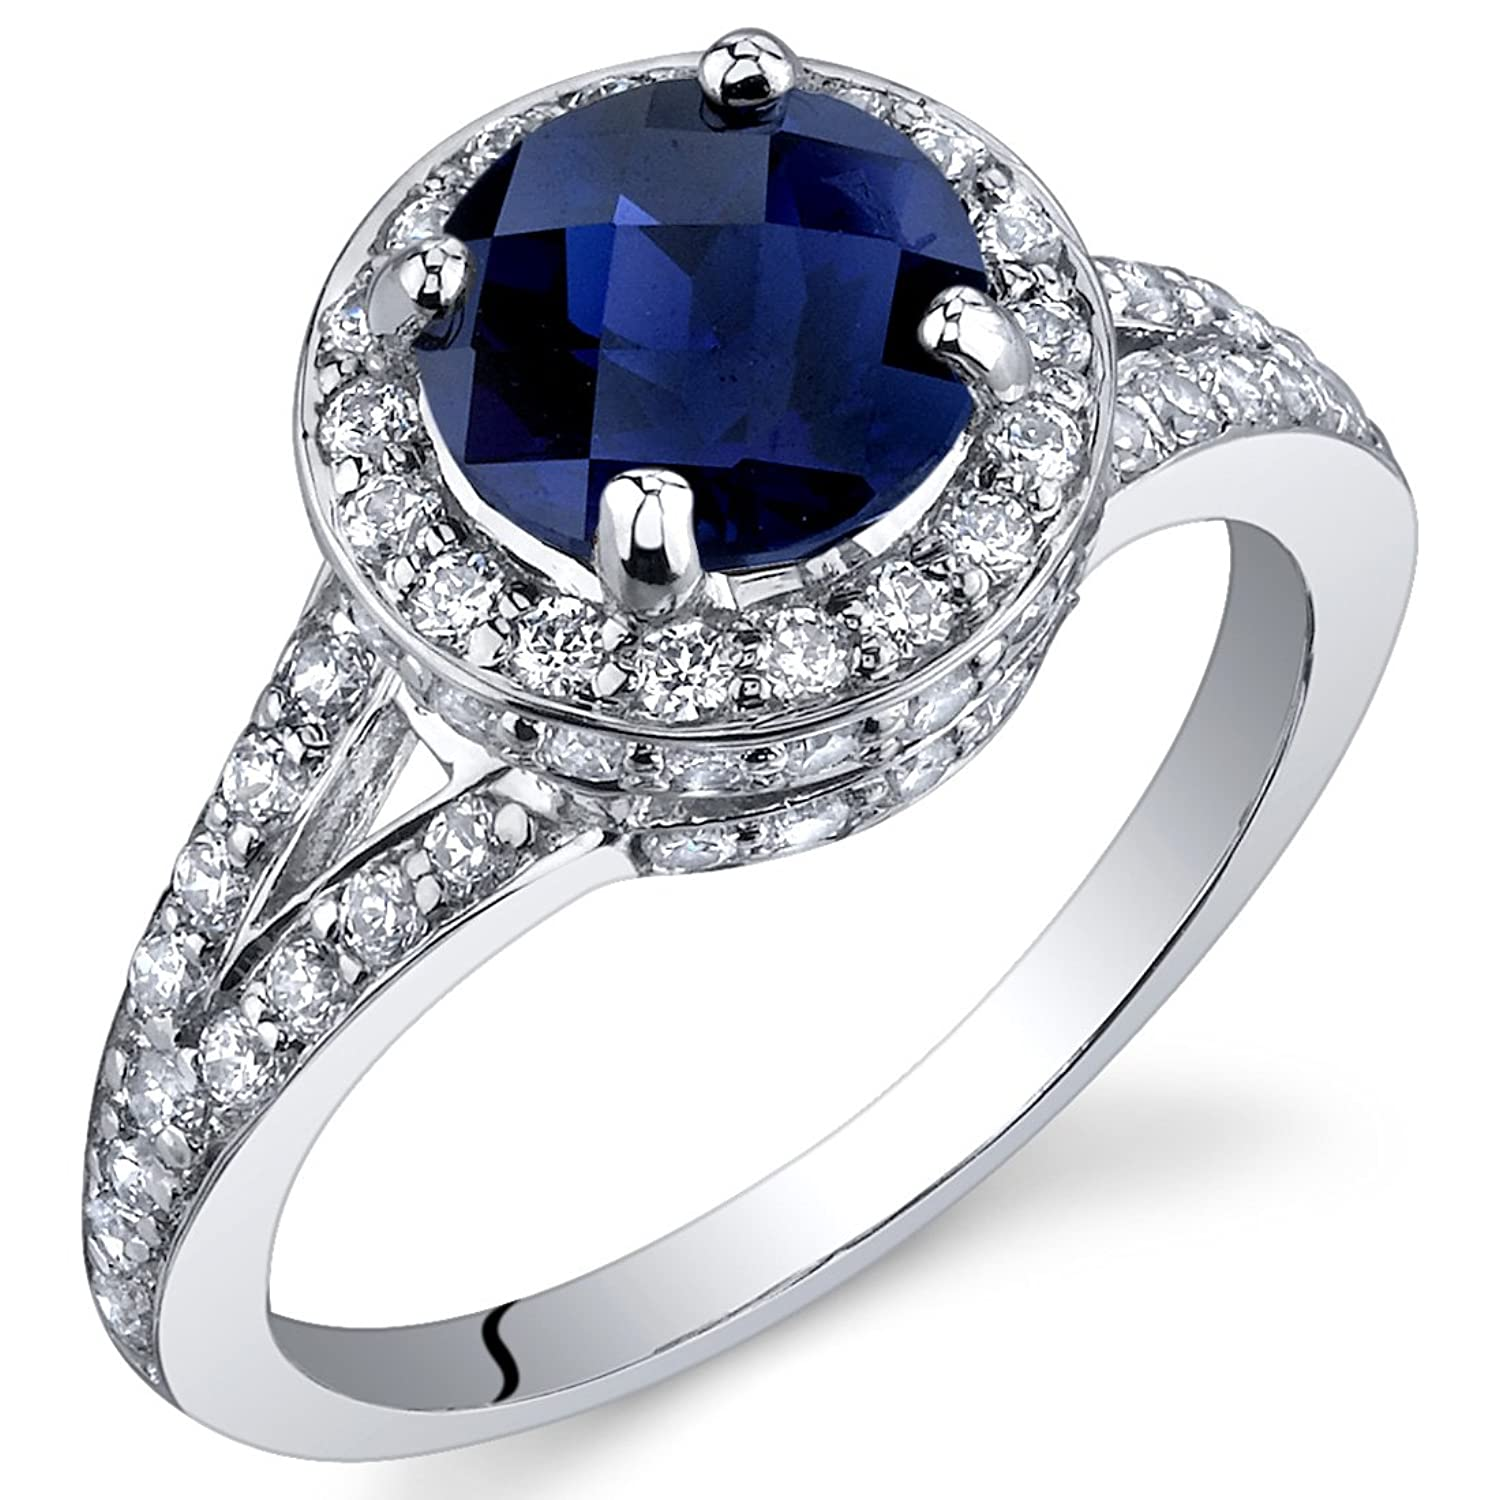 ct cushion jewelry diamond engagement blue ring royal more views platinum sapphire wedding rings